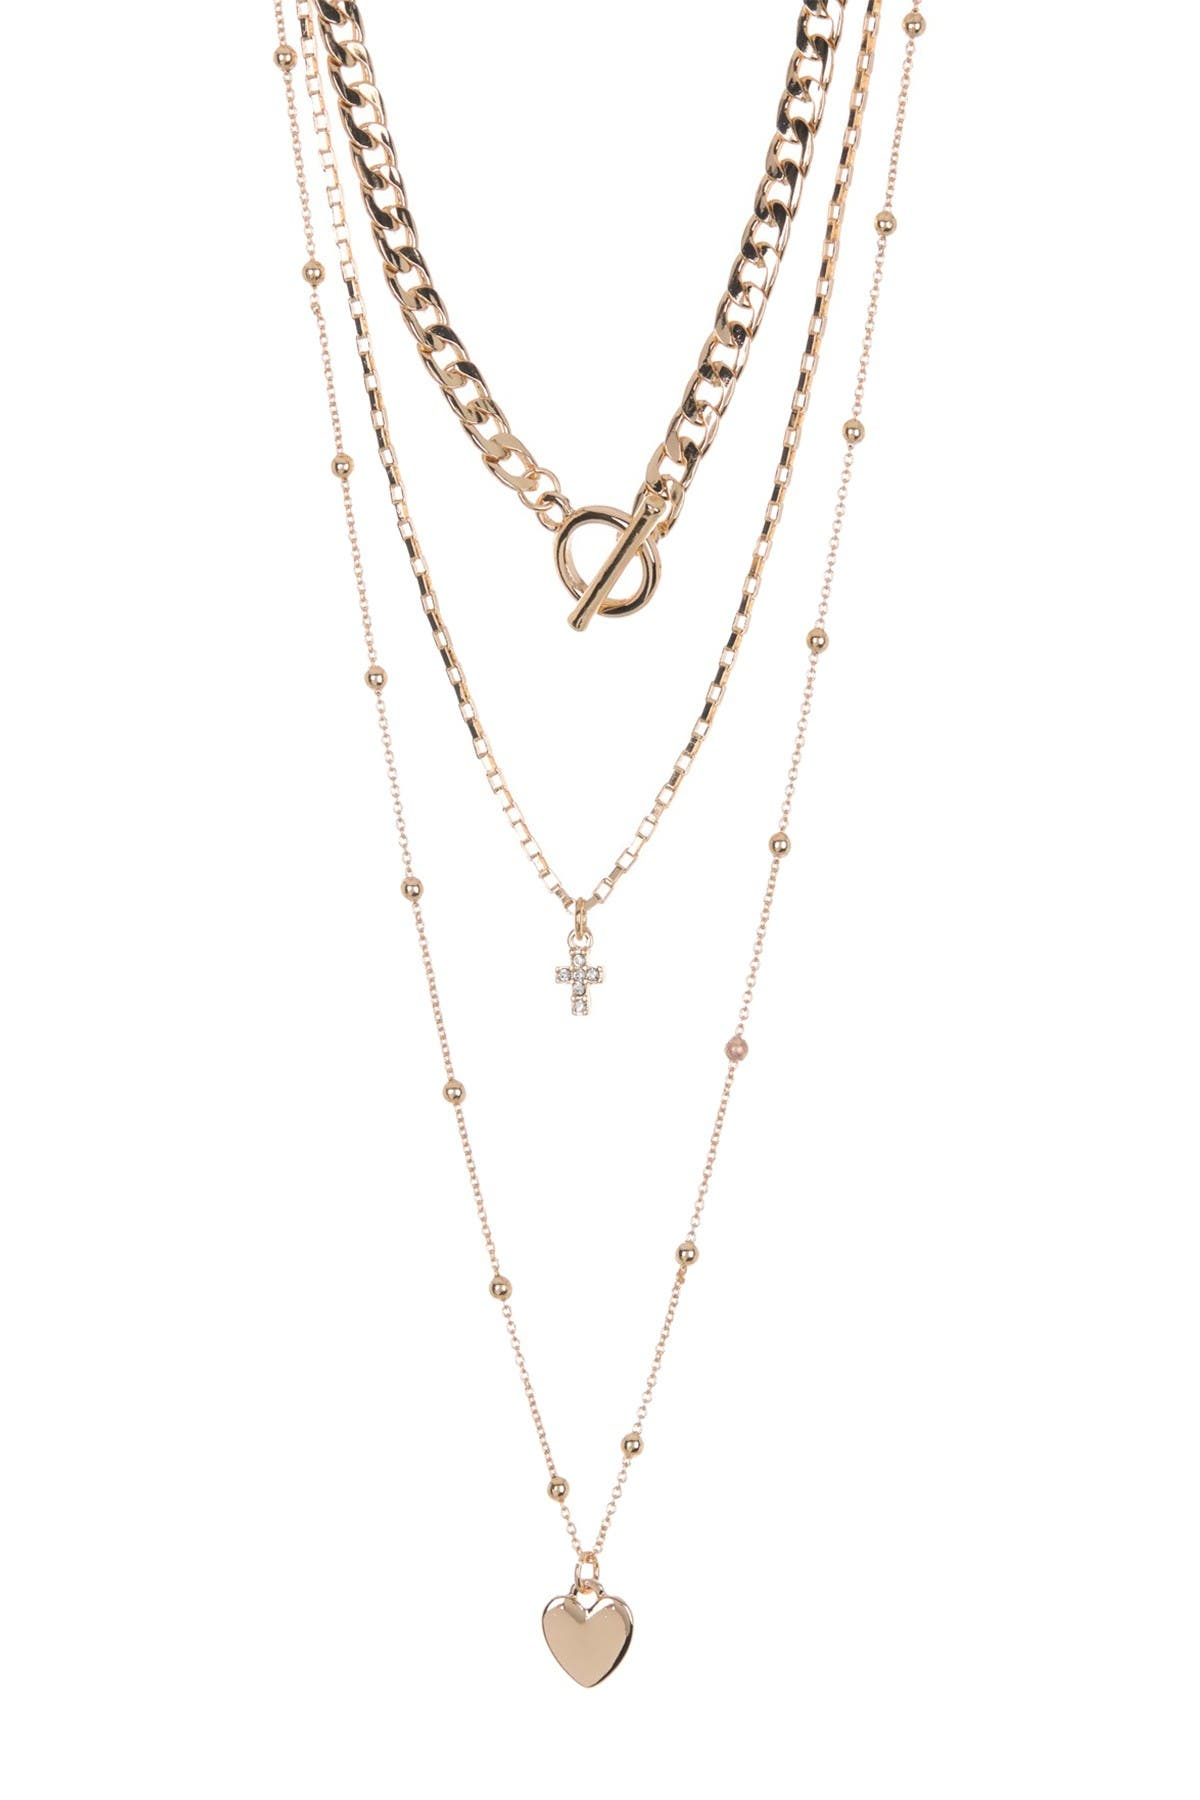 Image of AREA STARS Cross Heart Layered Necklace Set